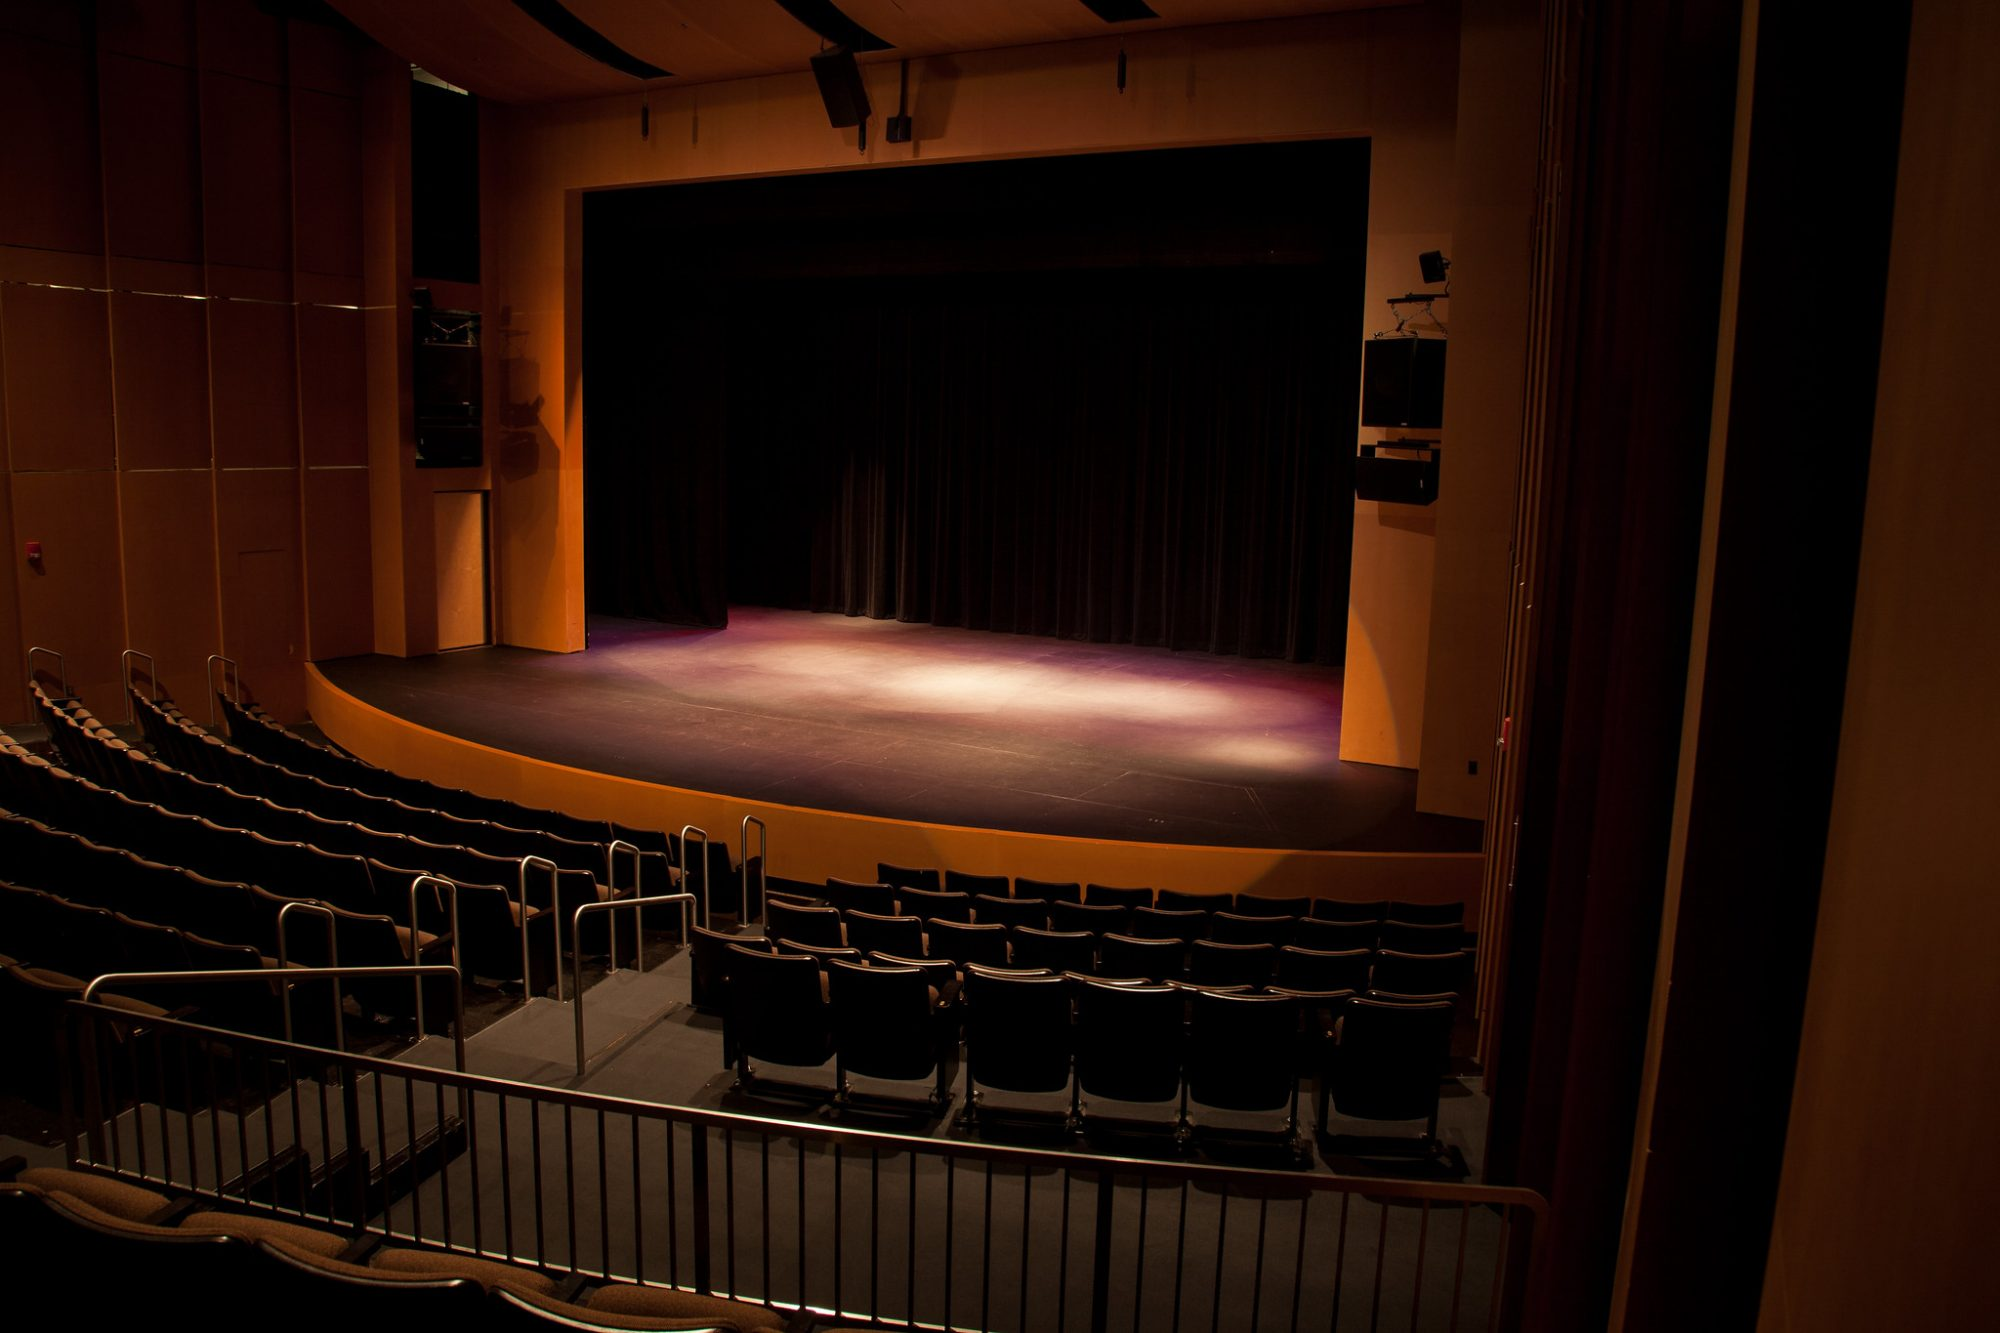 The Theater in the Doudna Fine Arts Center